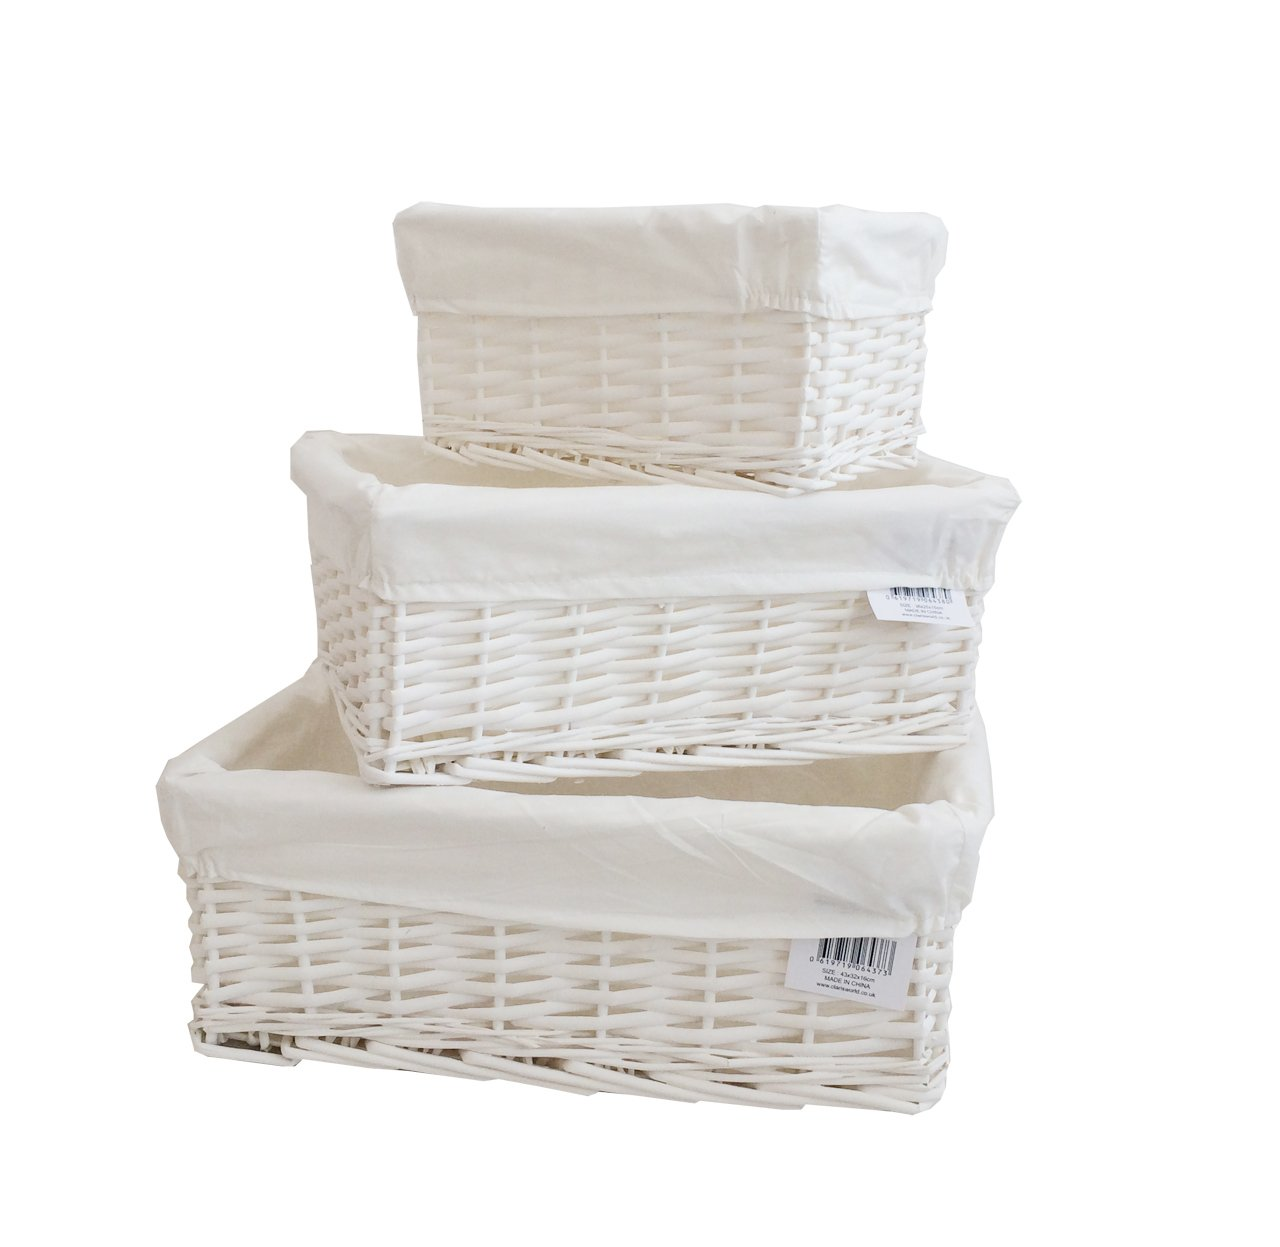 Arpan Set Of 3 White Wicker Gift Hamper Storage Basket With White Cloth Lining CL-11-24-SET-OF3-LB